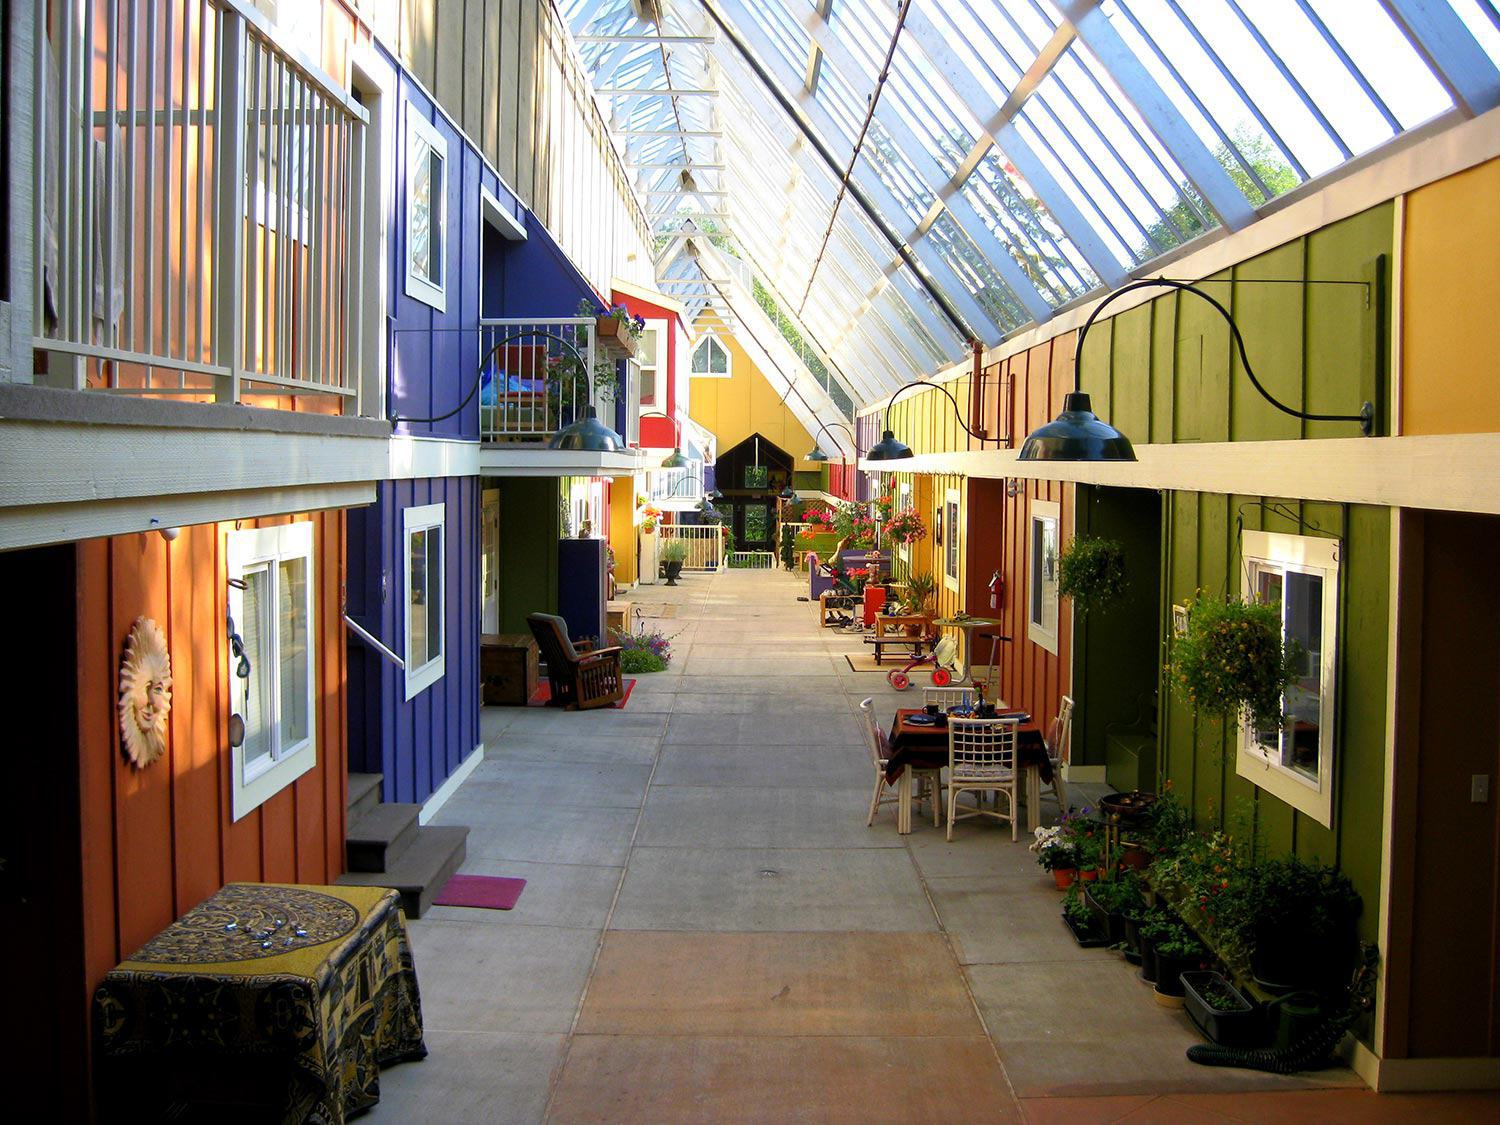 Cooperative housing in Denmark